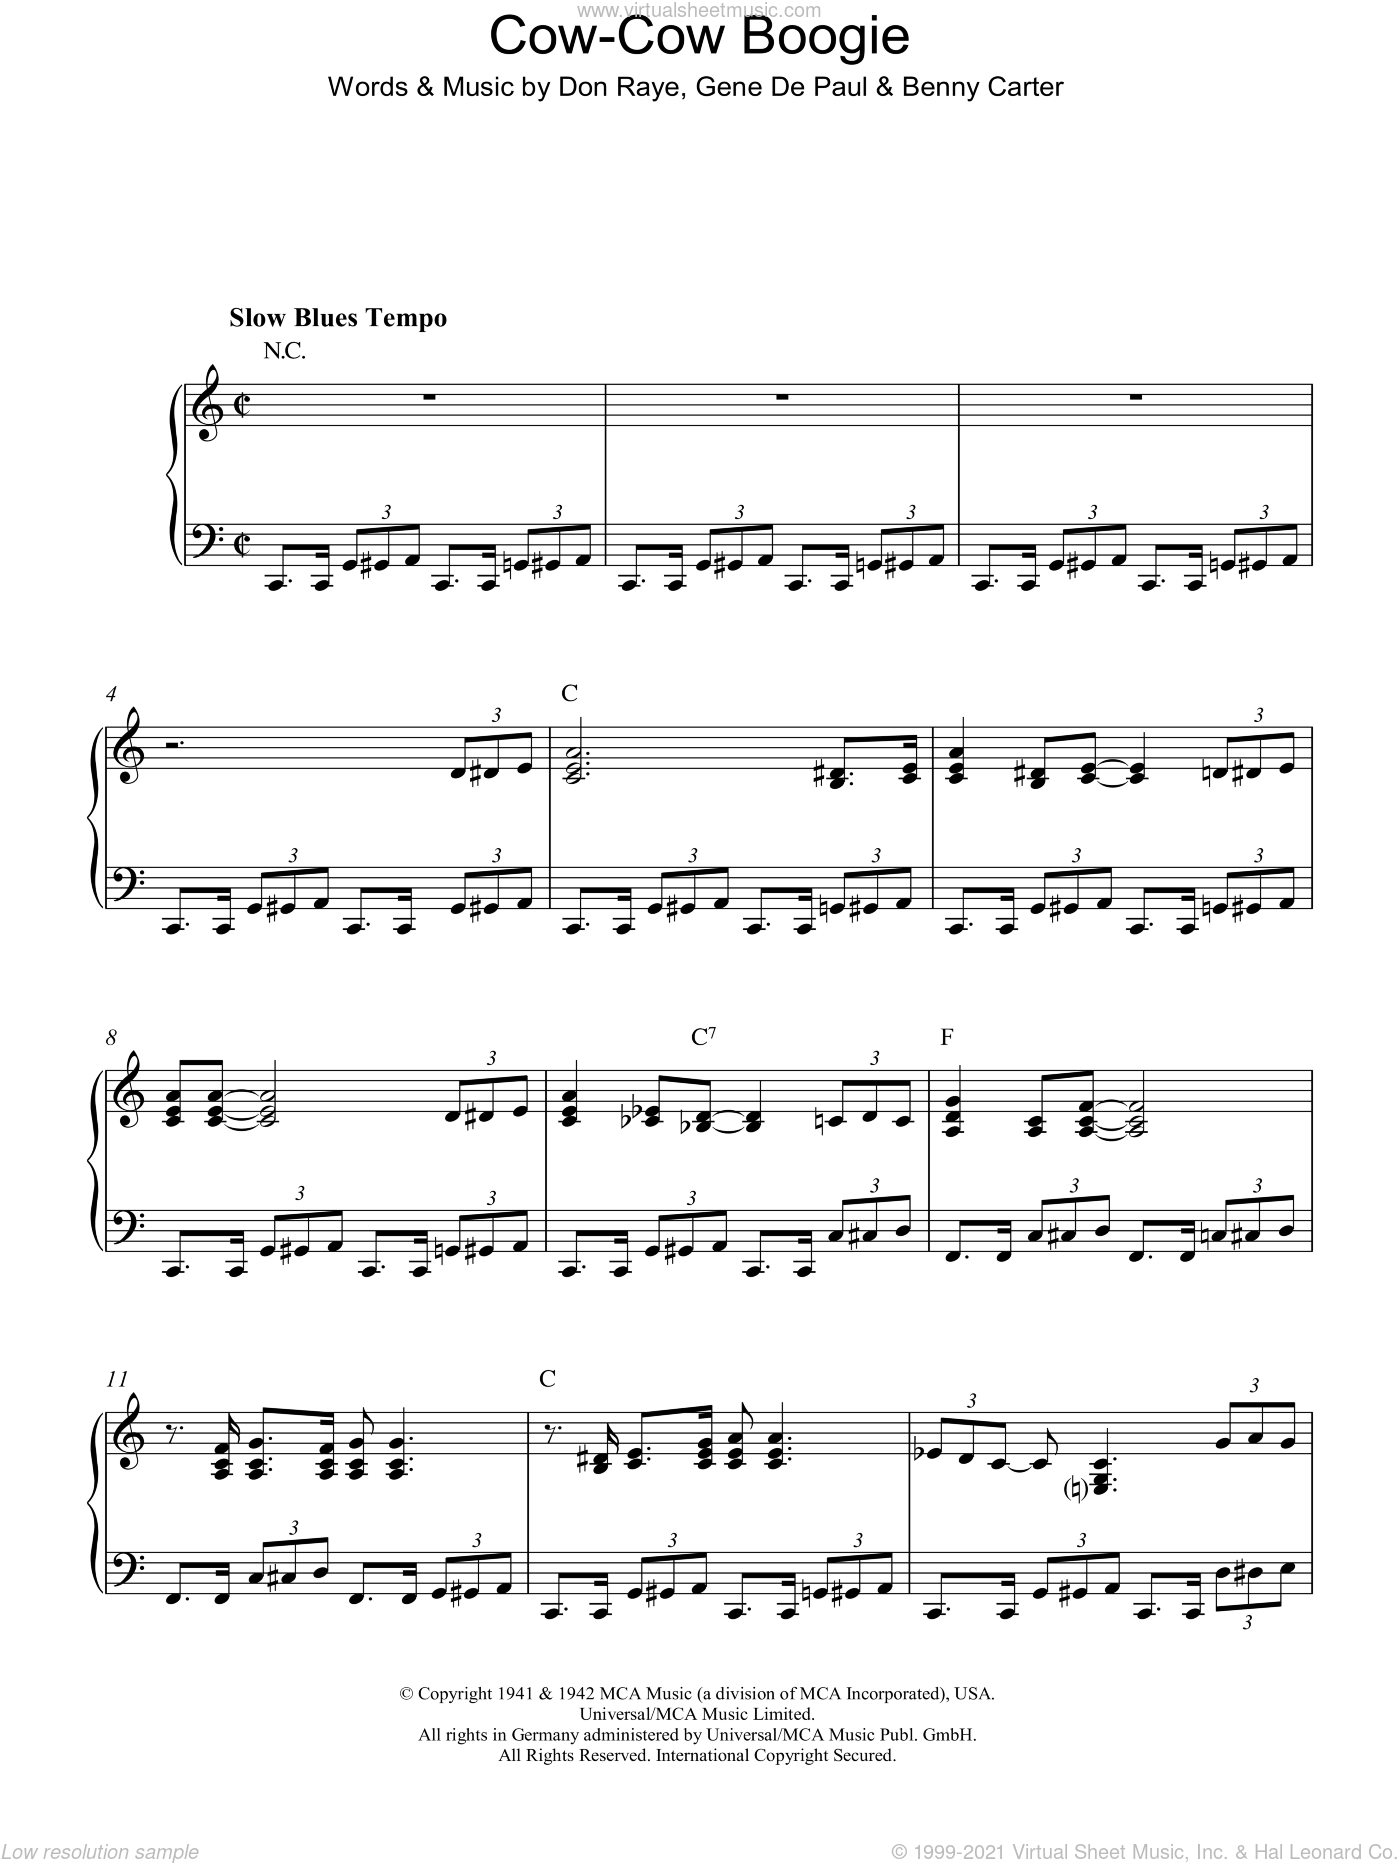 Cow-Cow Boogie sheet music for piano solo by Gene DePaul